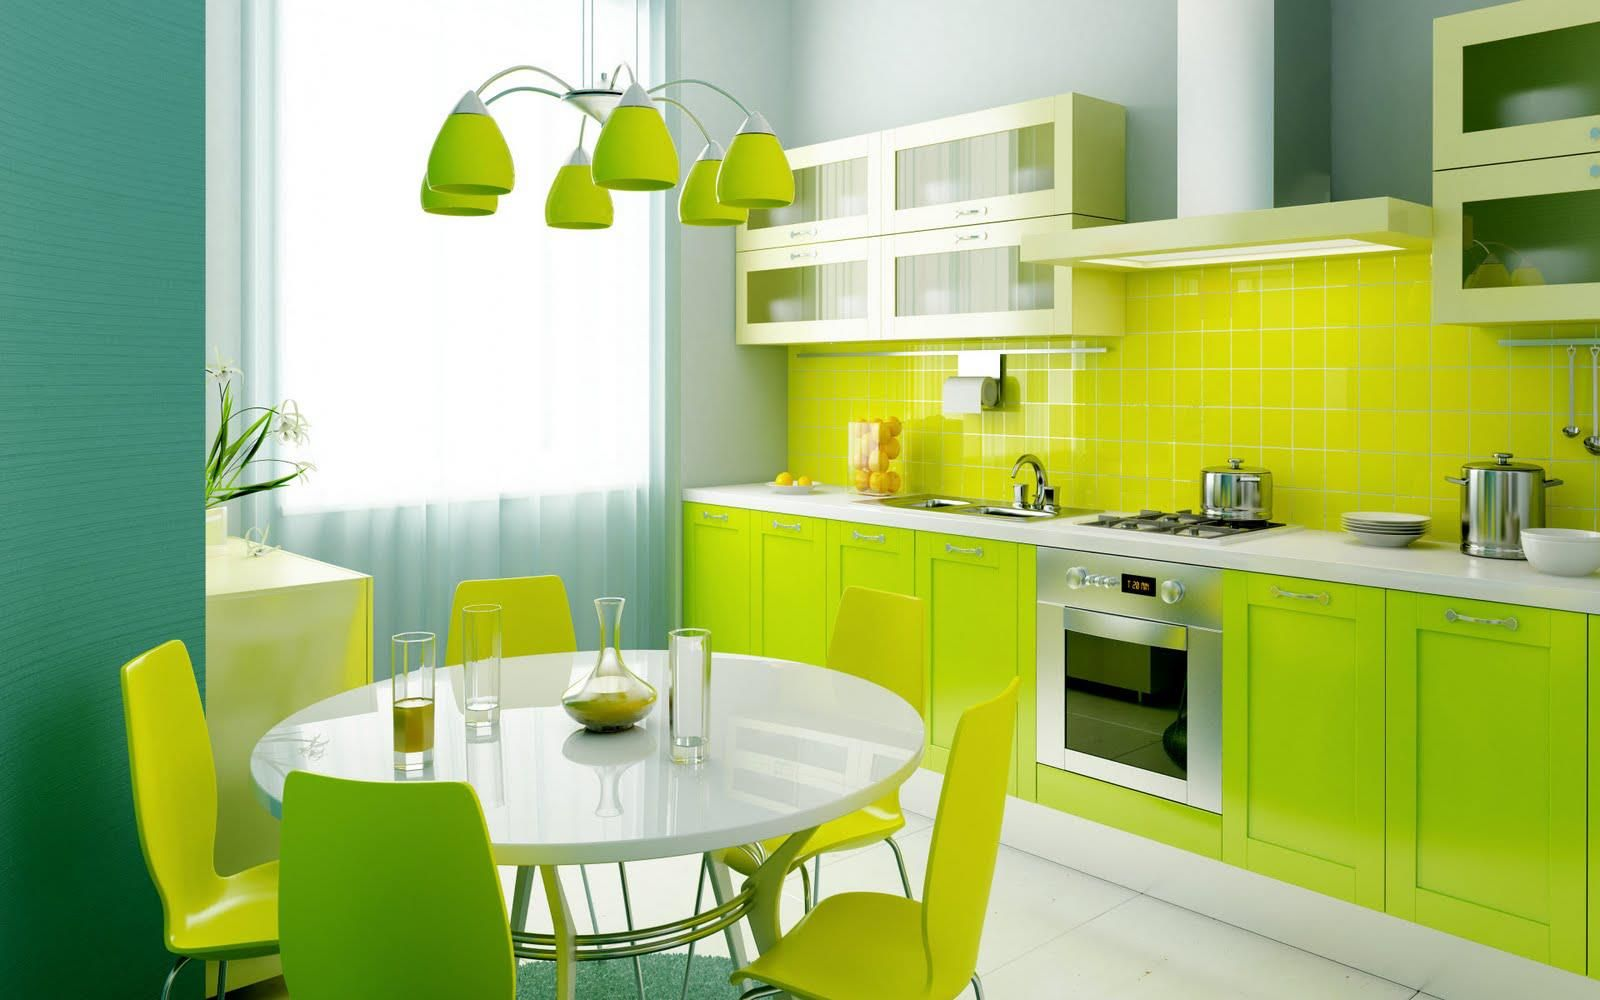 Tasteful Neon Green Kitchen Design Do You Like This Super Bright Neat Looking Design Green Kitchen Designs Yellow Kitchen Designs Green Kitchen Cabinets